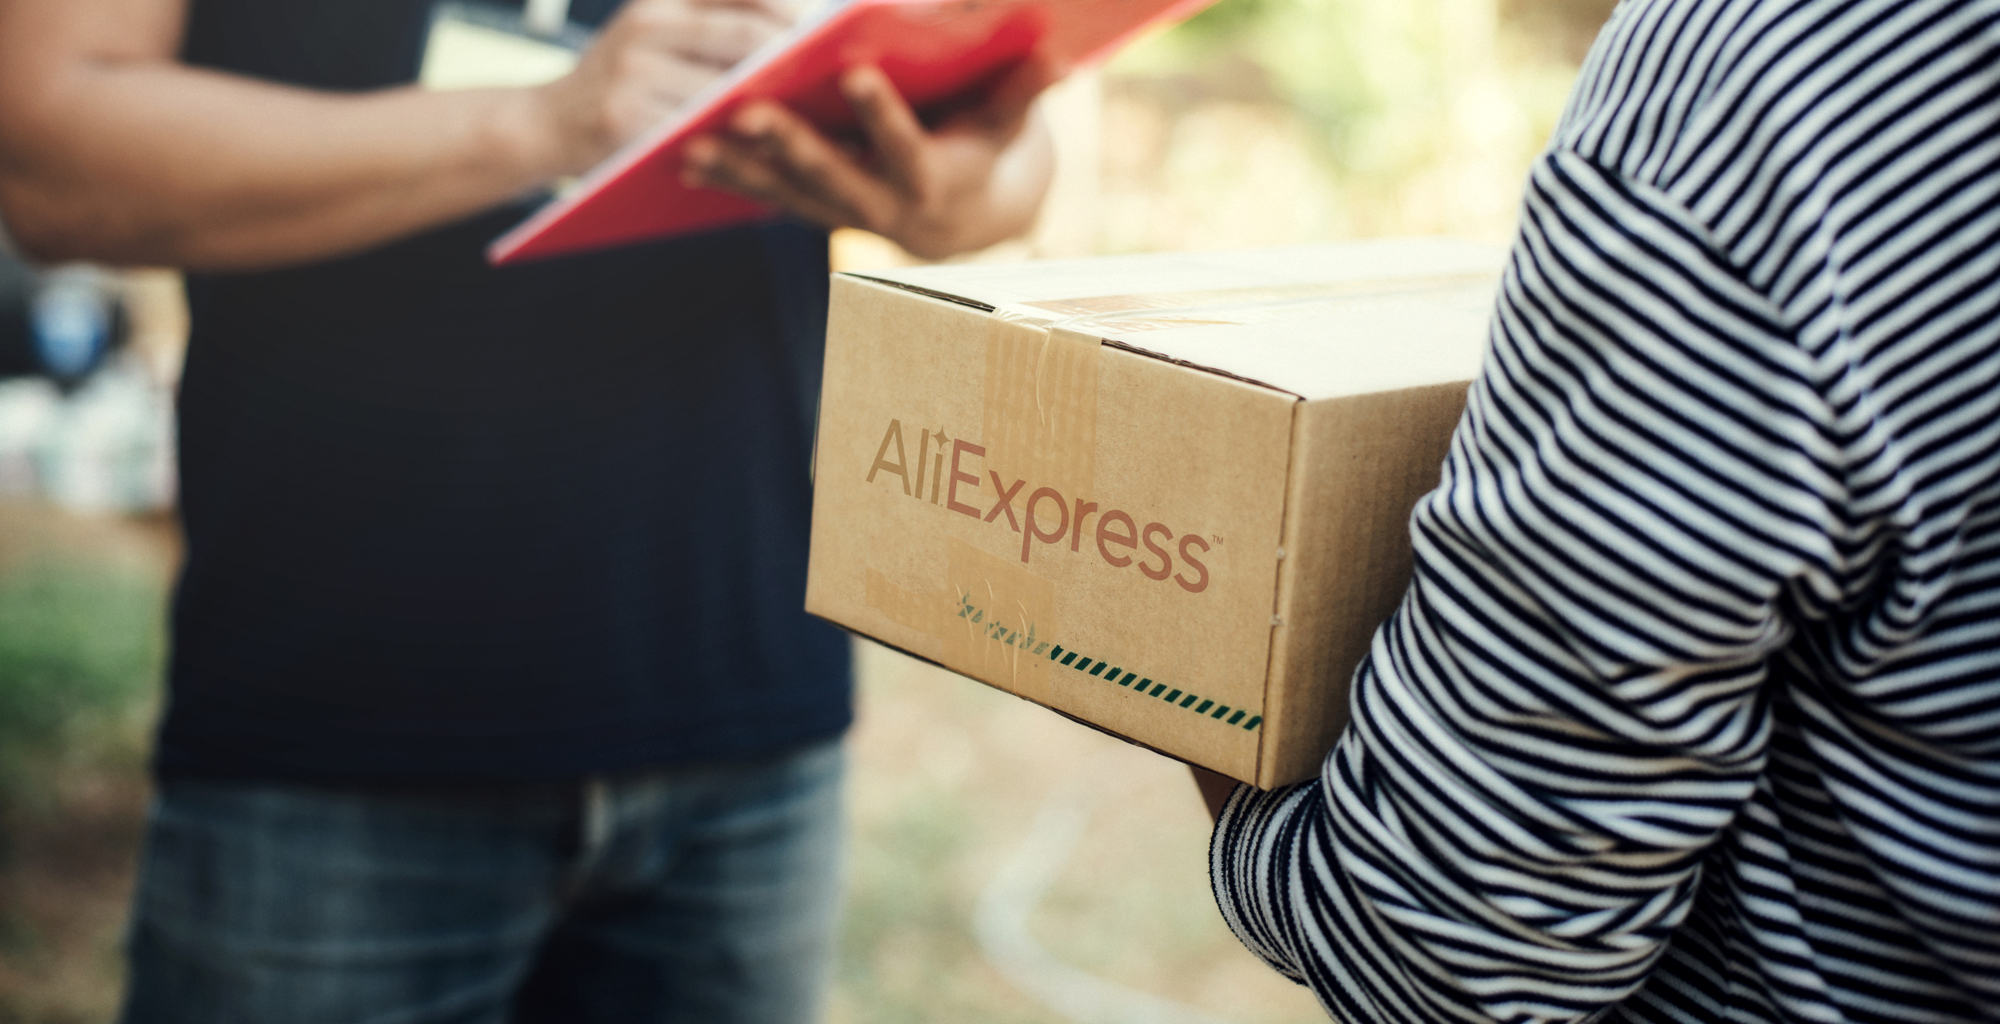 aliexpress seo